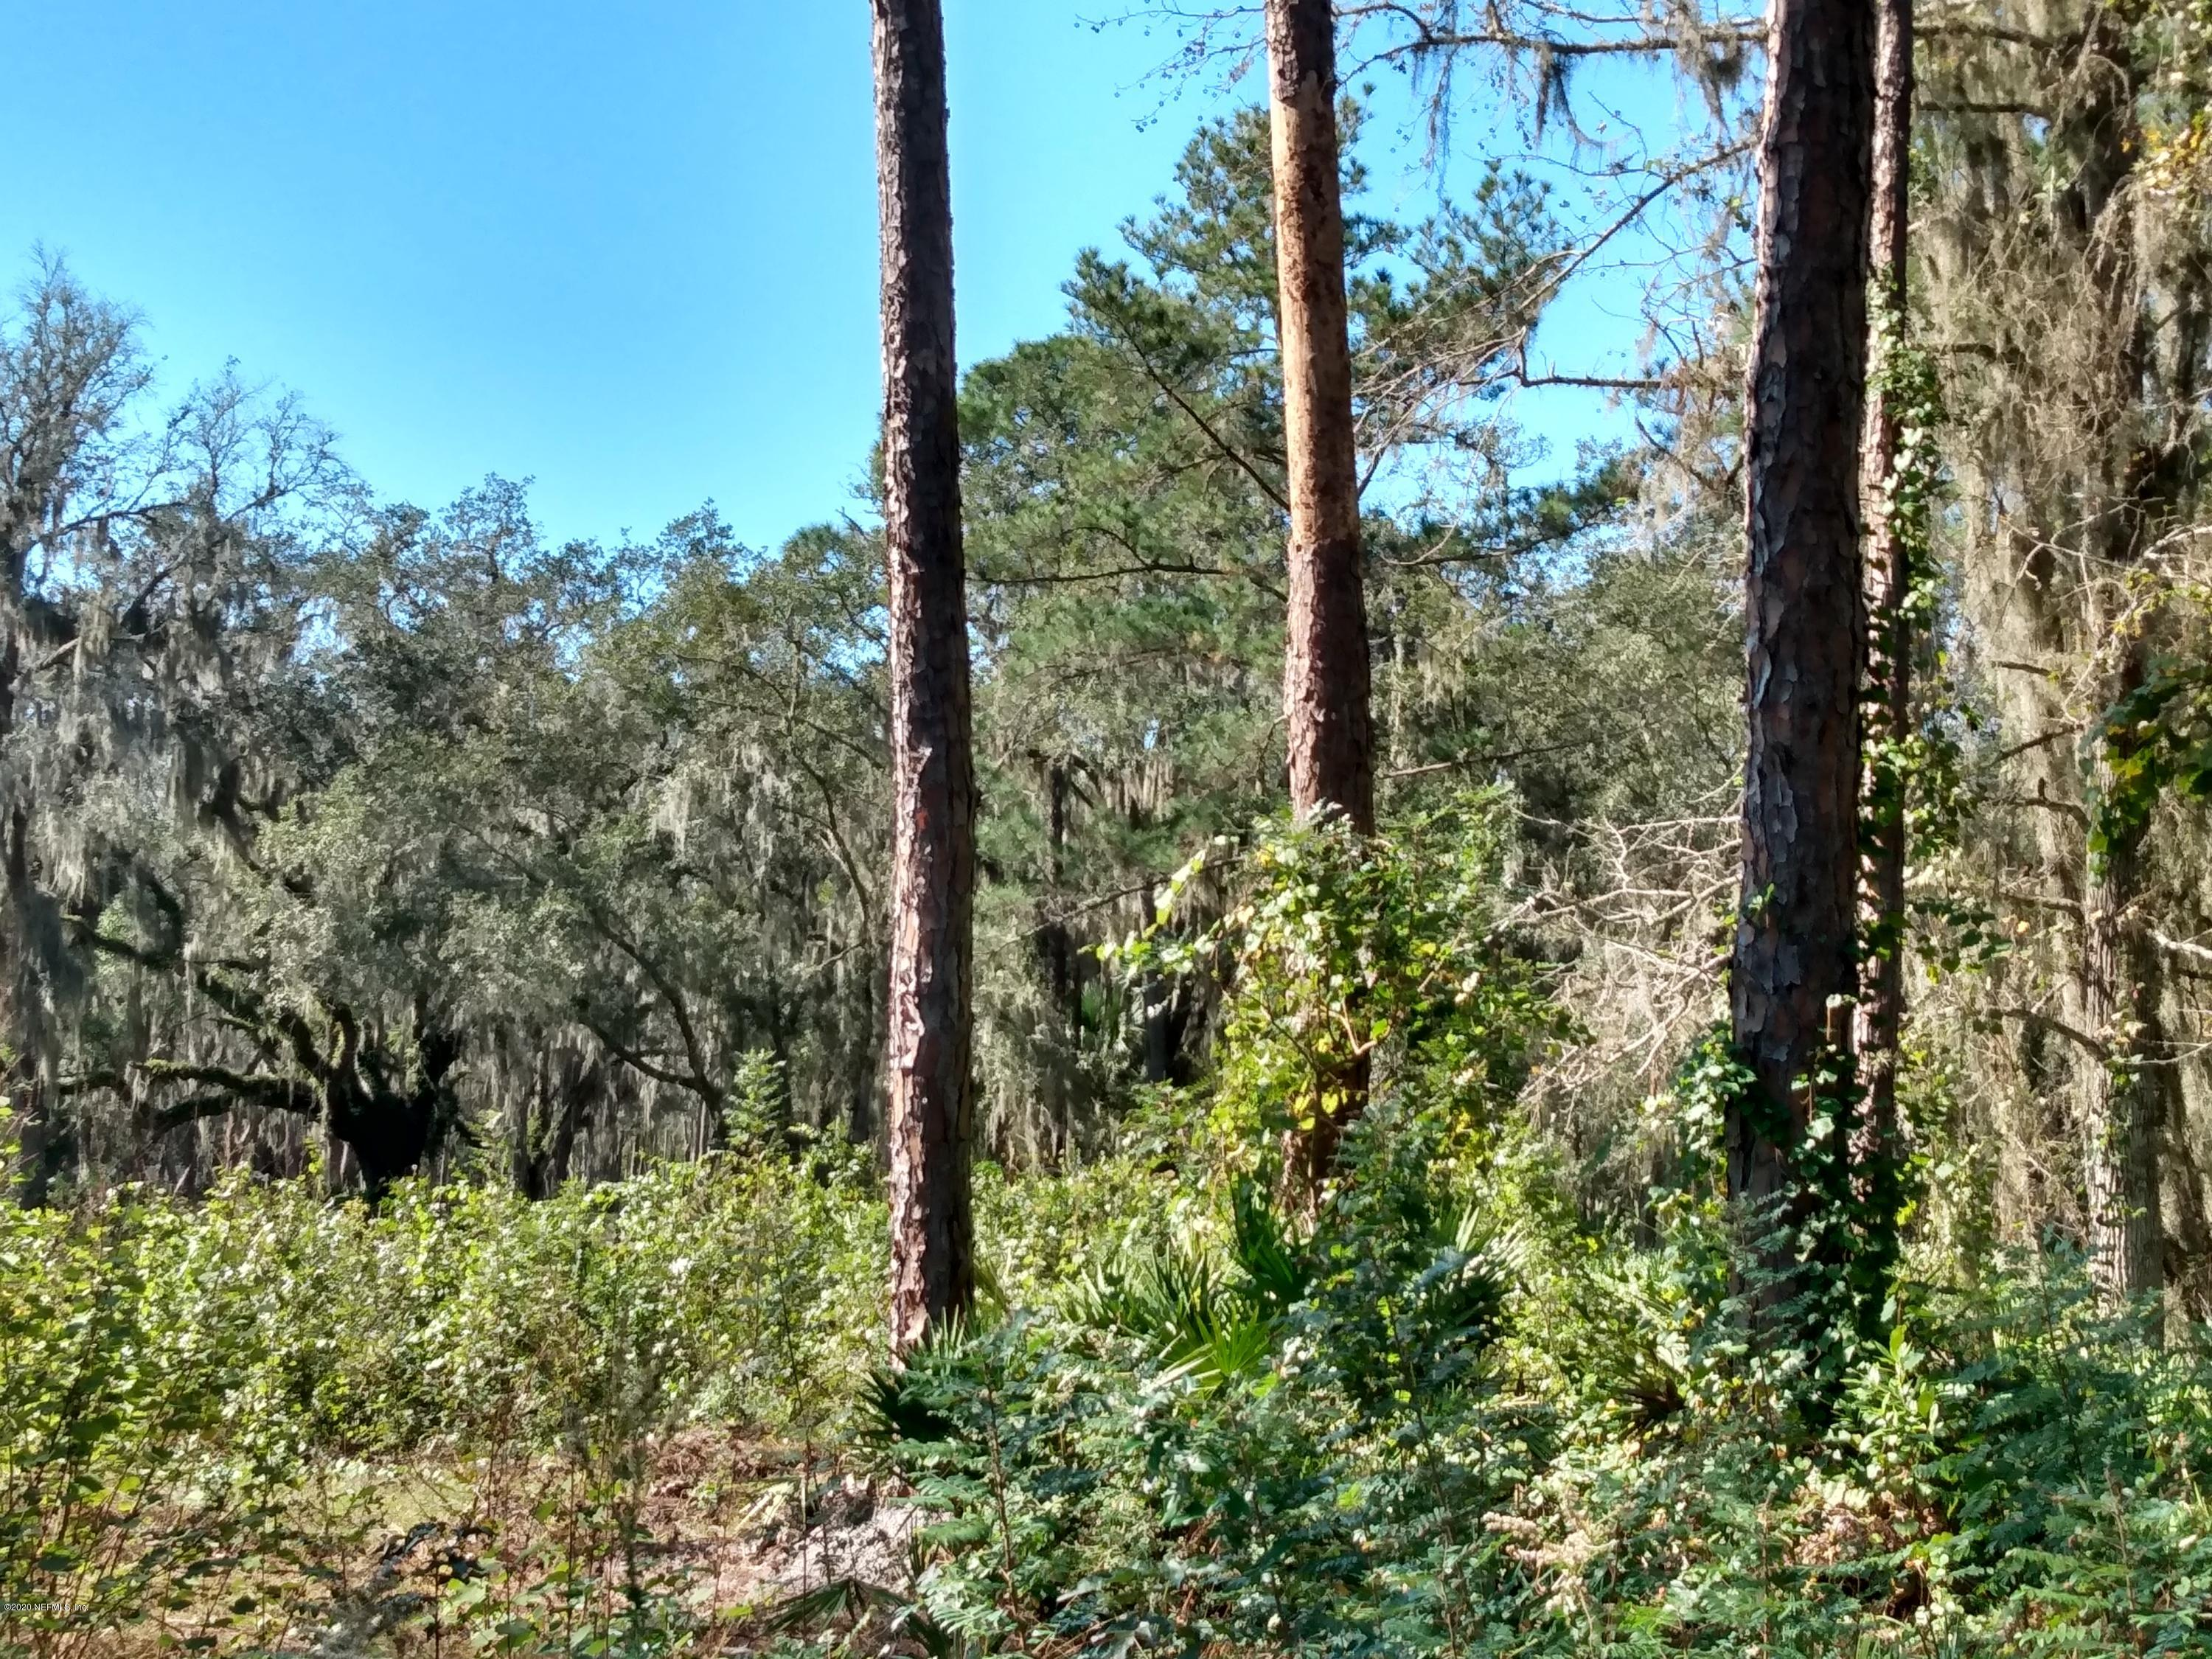 287 RIVER, EAST PALATKA, FLORIDA 32131, ,Vacant land,For sale,RIVER,1083104